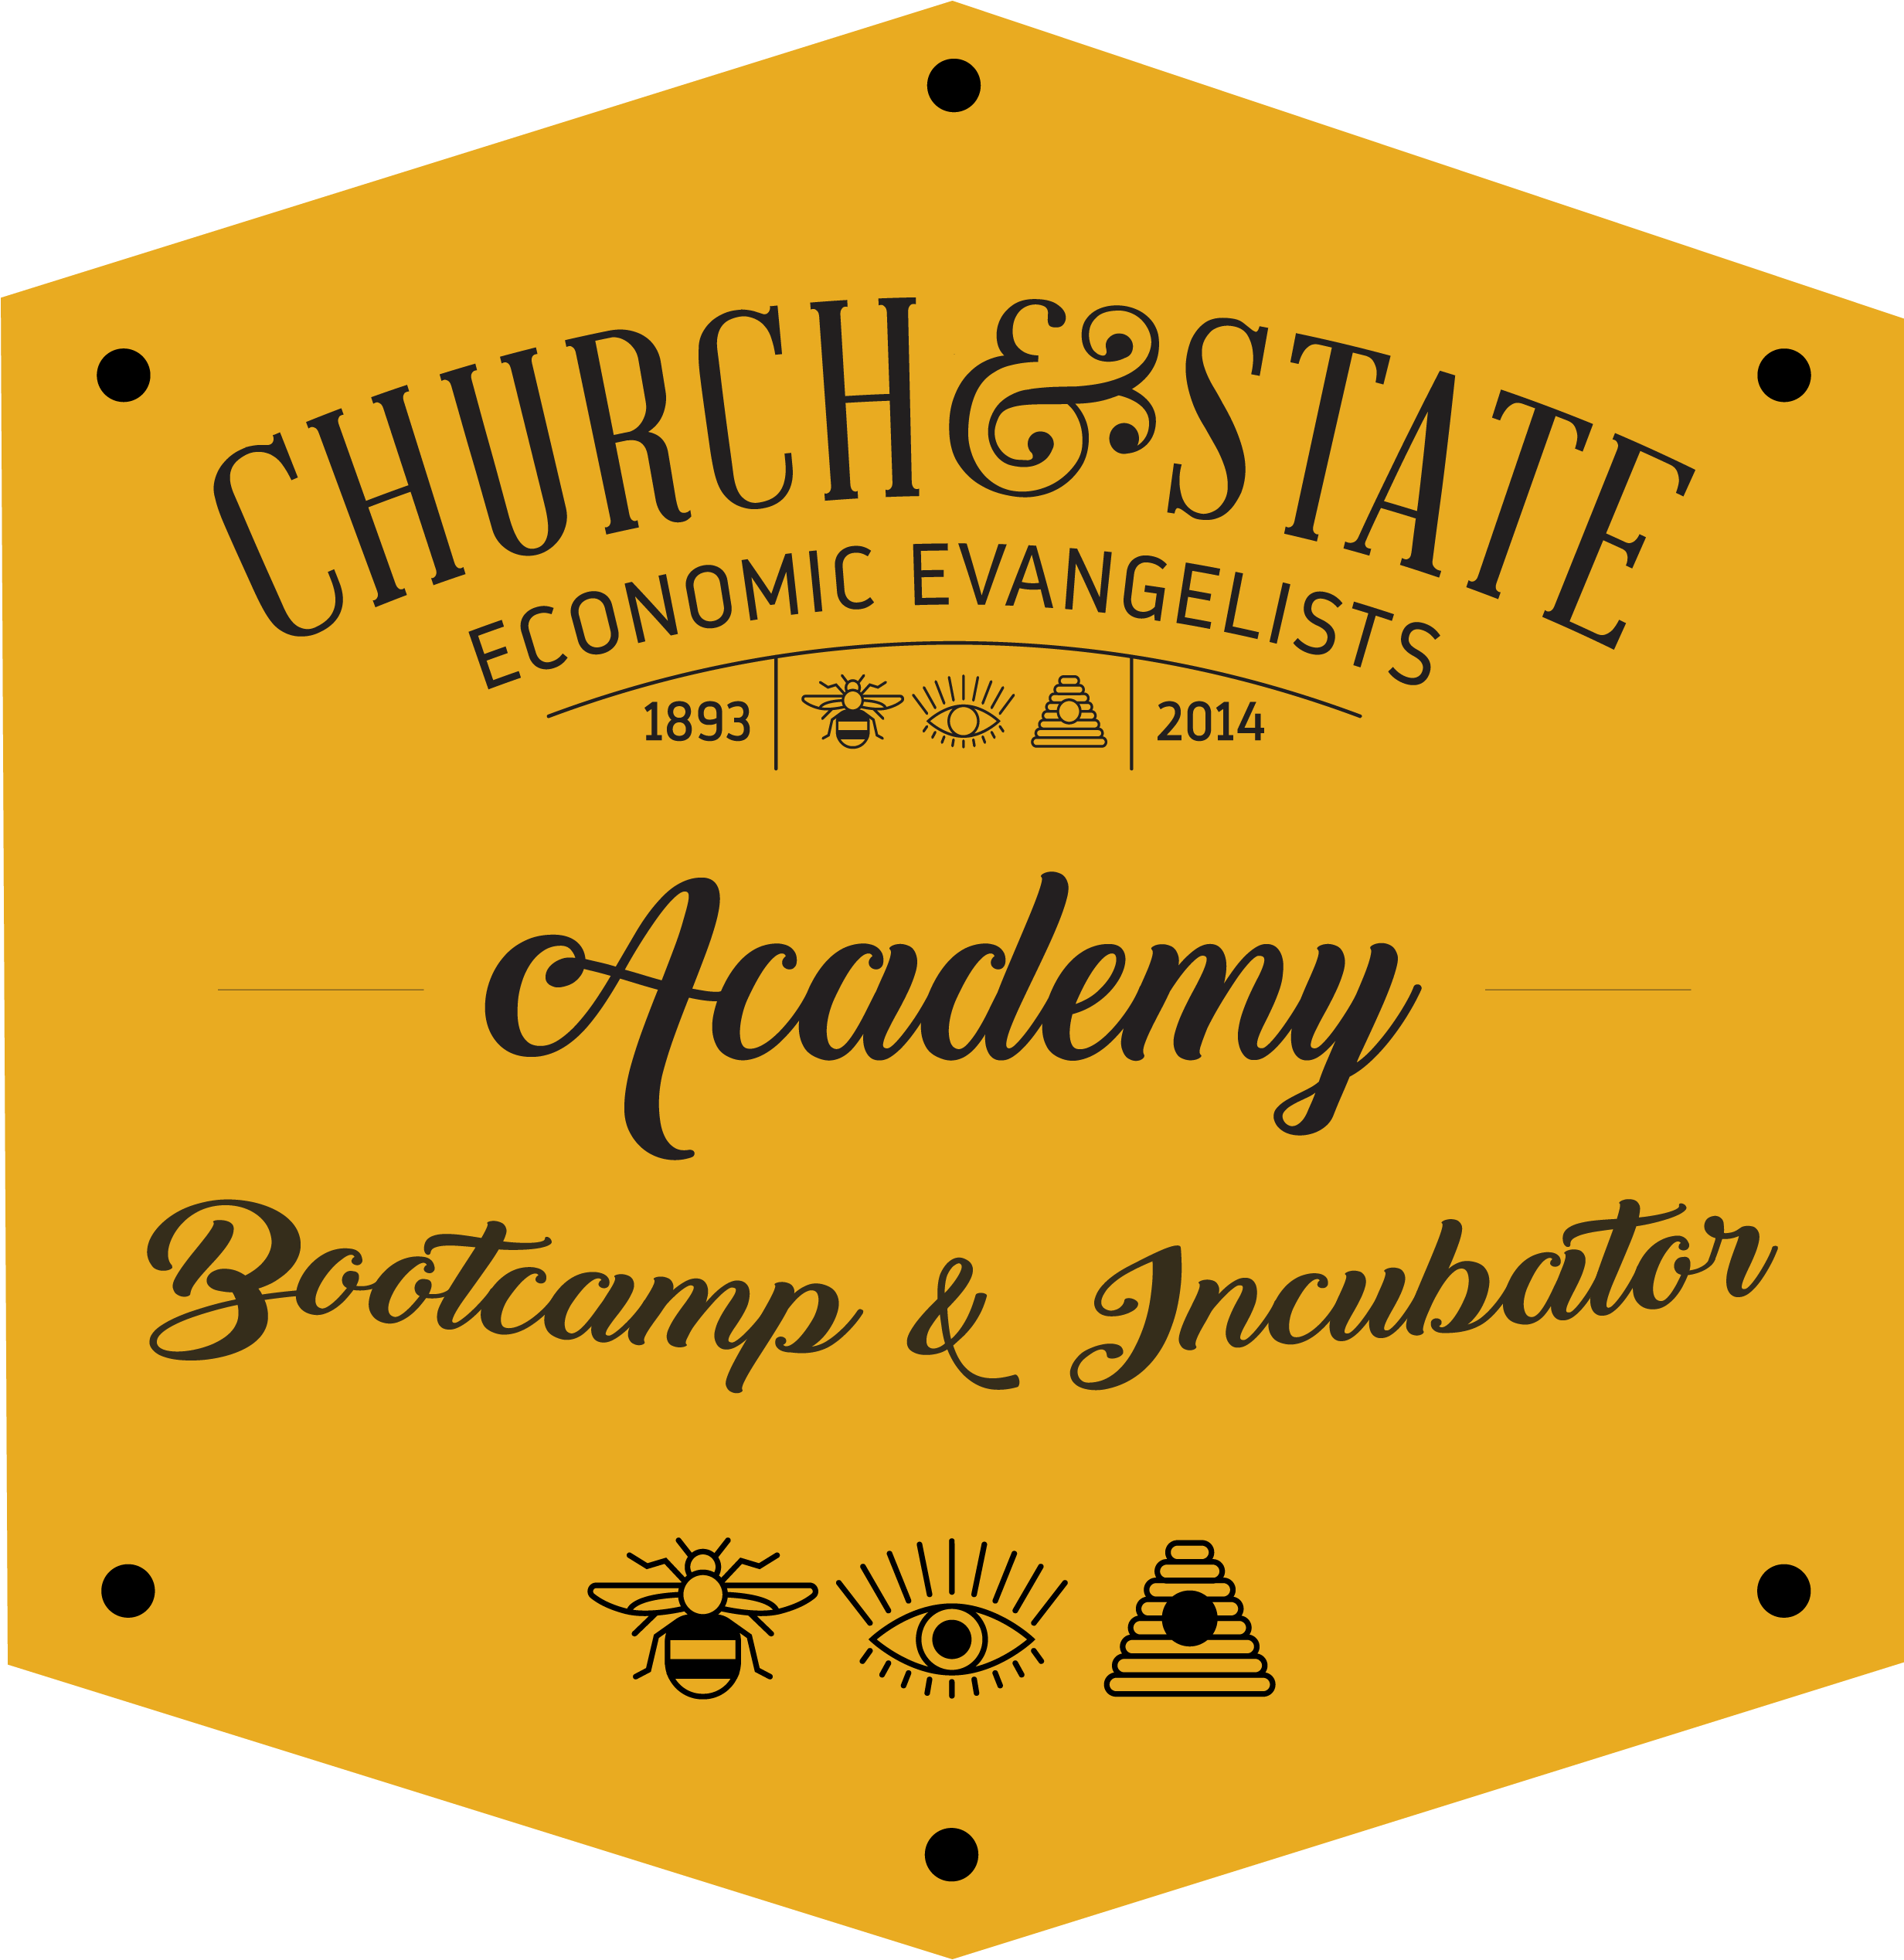 Church & State Academy Crash Course: Tax Implications for Startups